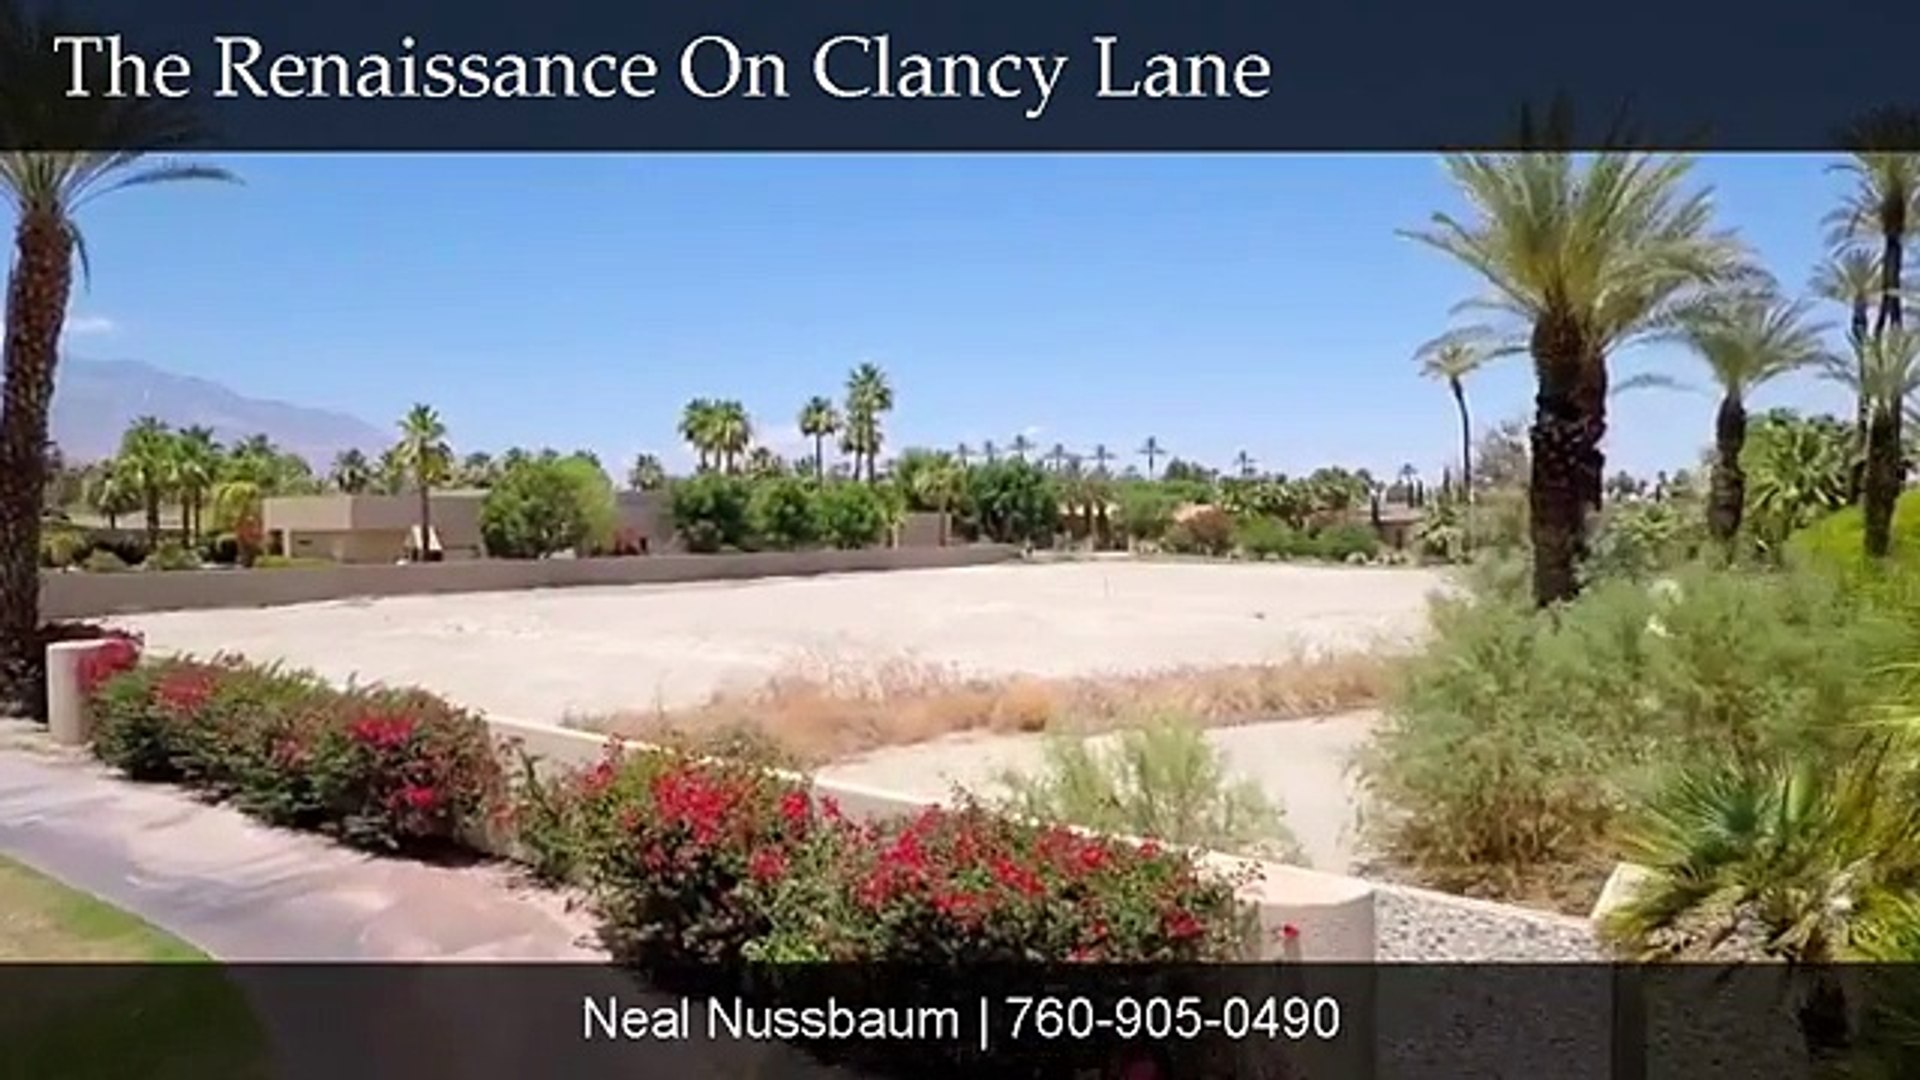 The Renaissance On Clancy Lane - Last Available Lot For Sale